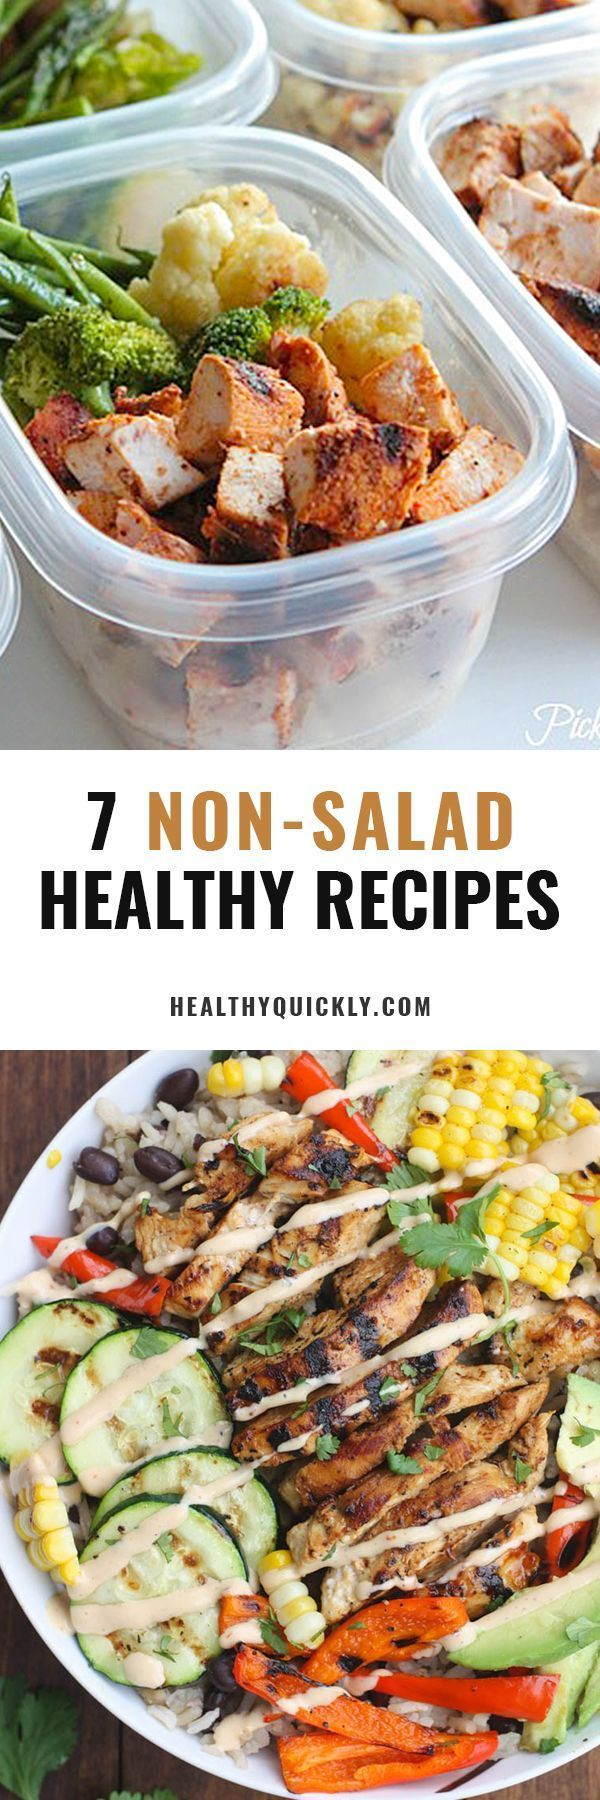 If you understand how important is to eat healthy but you hate salads... These recipes are for you. Perfect for lunch, dinner and even breakfast. On a budget and quite easy to make. These meals are great for a weightloss and to keep your body light if you